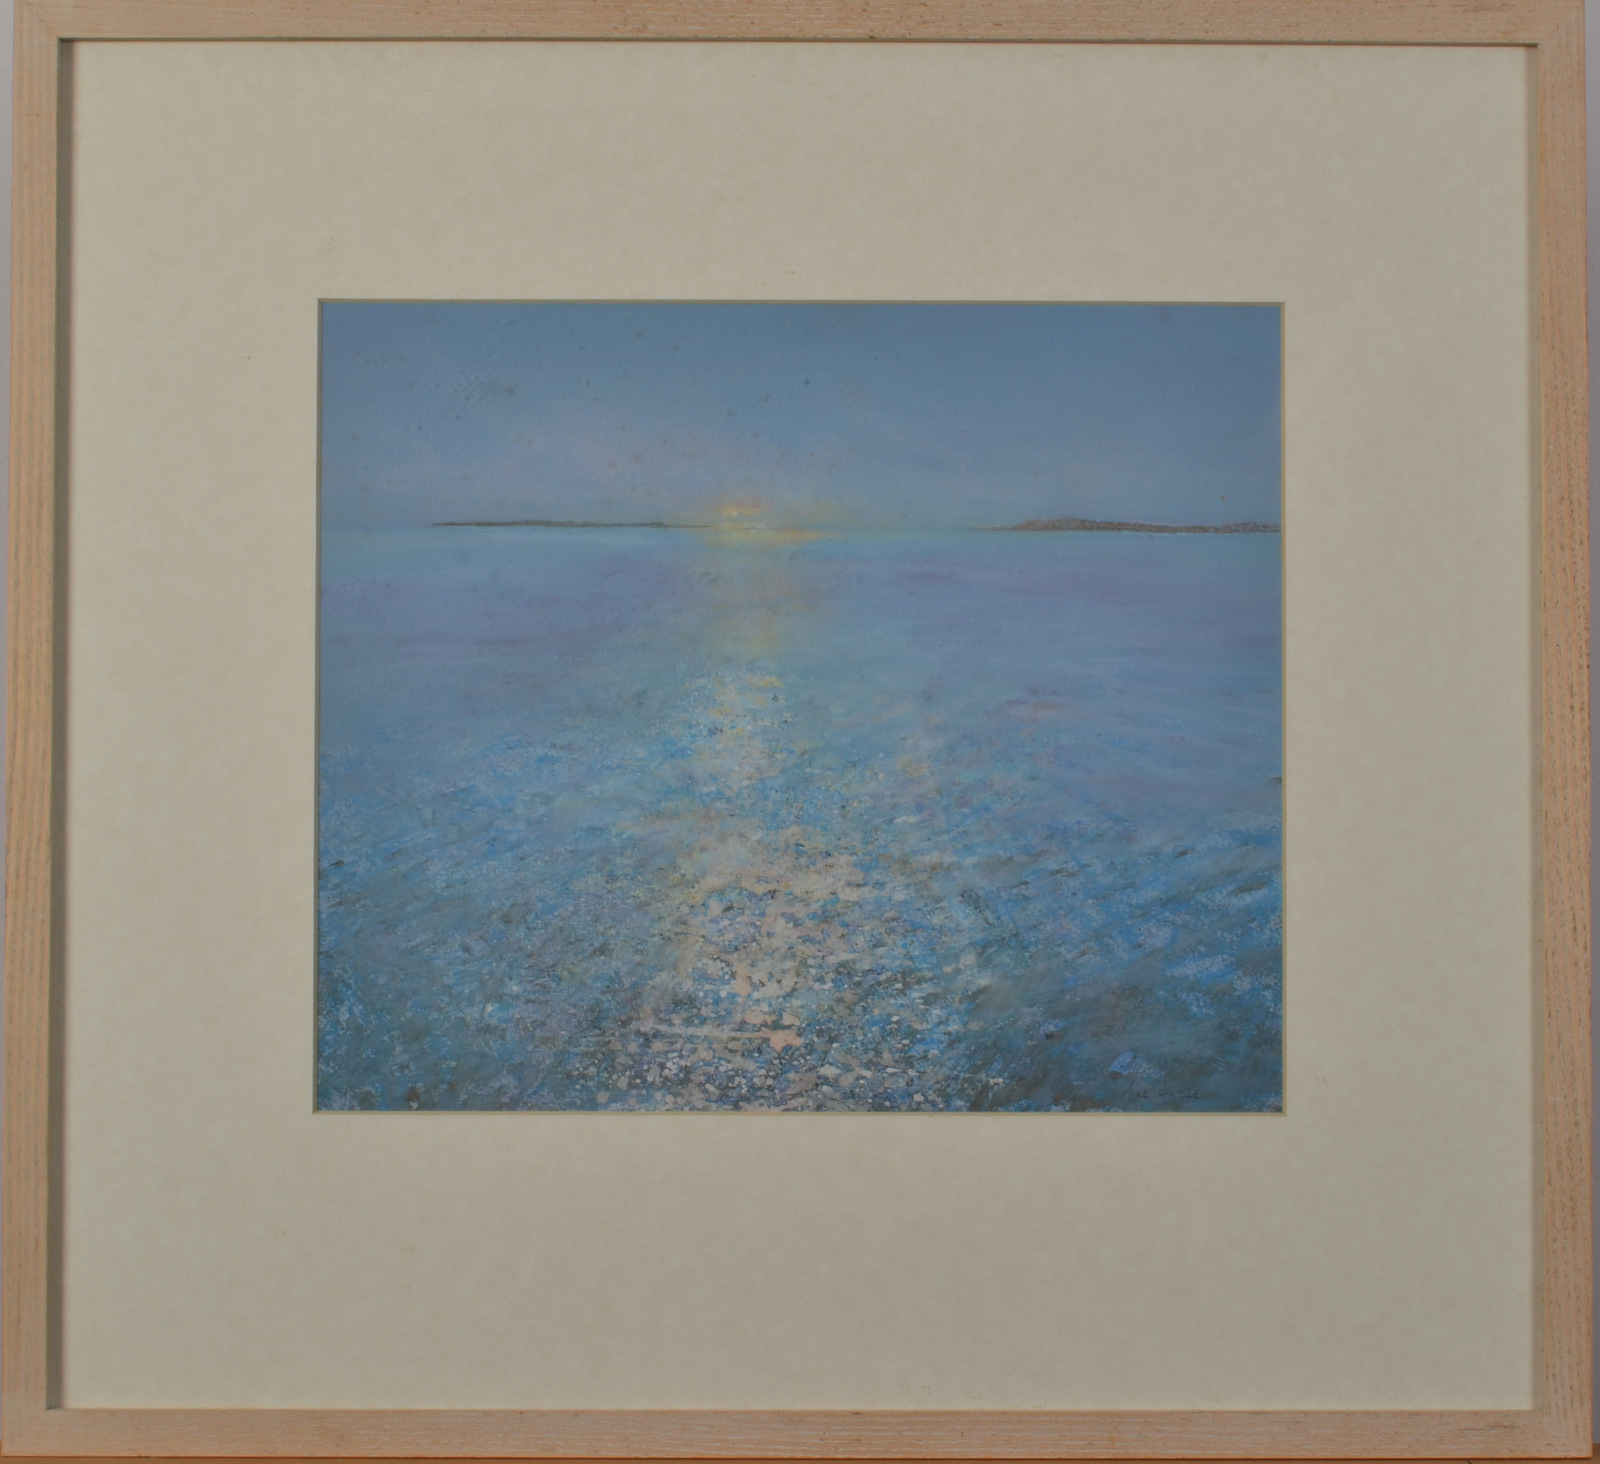 Lot 41 - MIKE HINDLE Pale Blue Sea Mixed media Signed Titled and dated on the back 2000 27 x 32cm